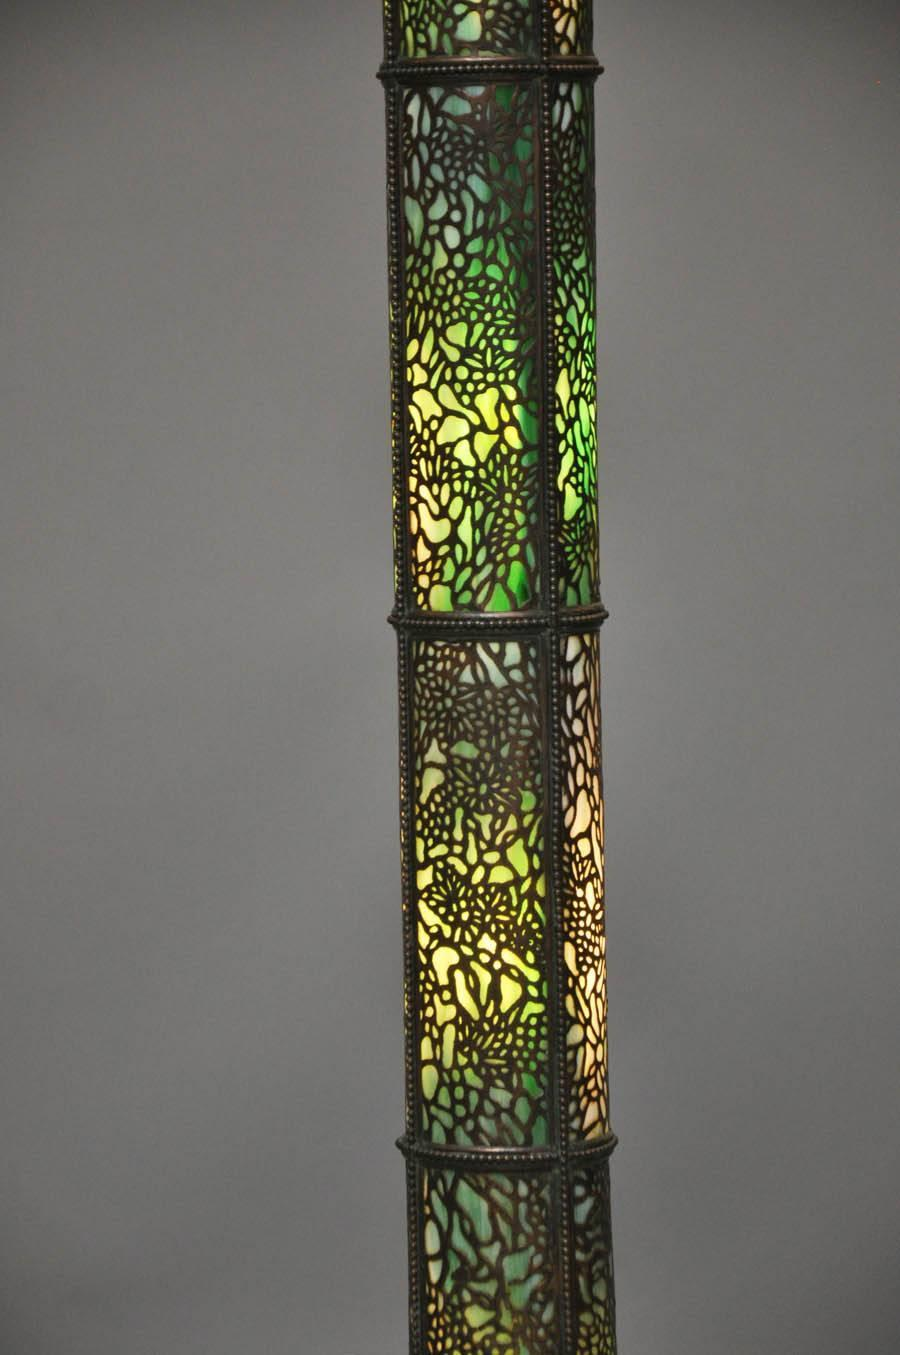 copper and bronze floor lamp with stained glass for sale at 1stdibs. Black Bedroom Furniture Sets. Home Design Ideas